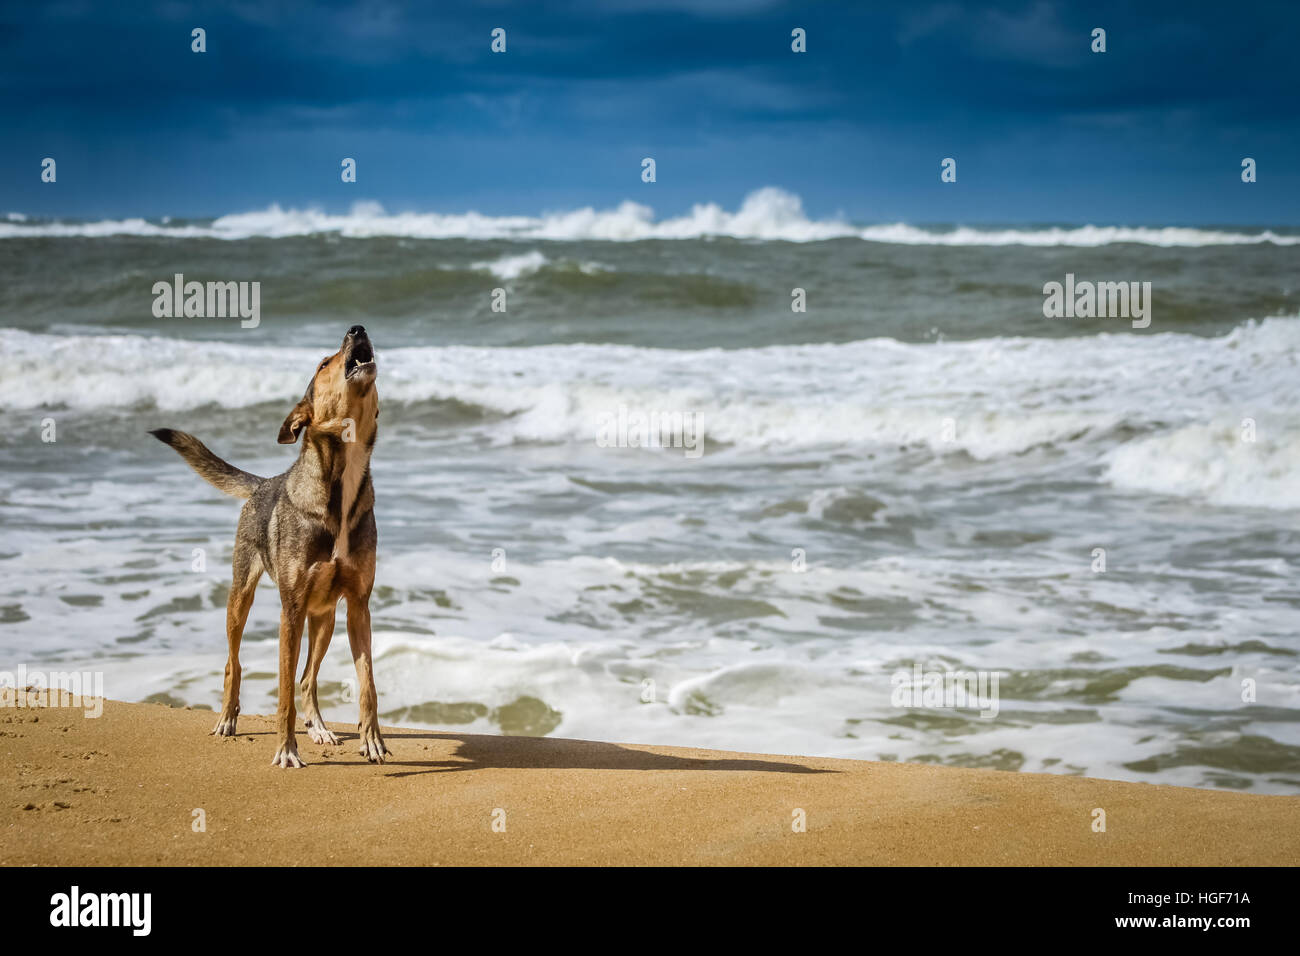 Dog standing on the shore and barking loudly - Stock Image